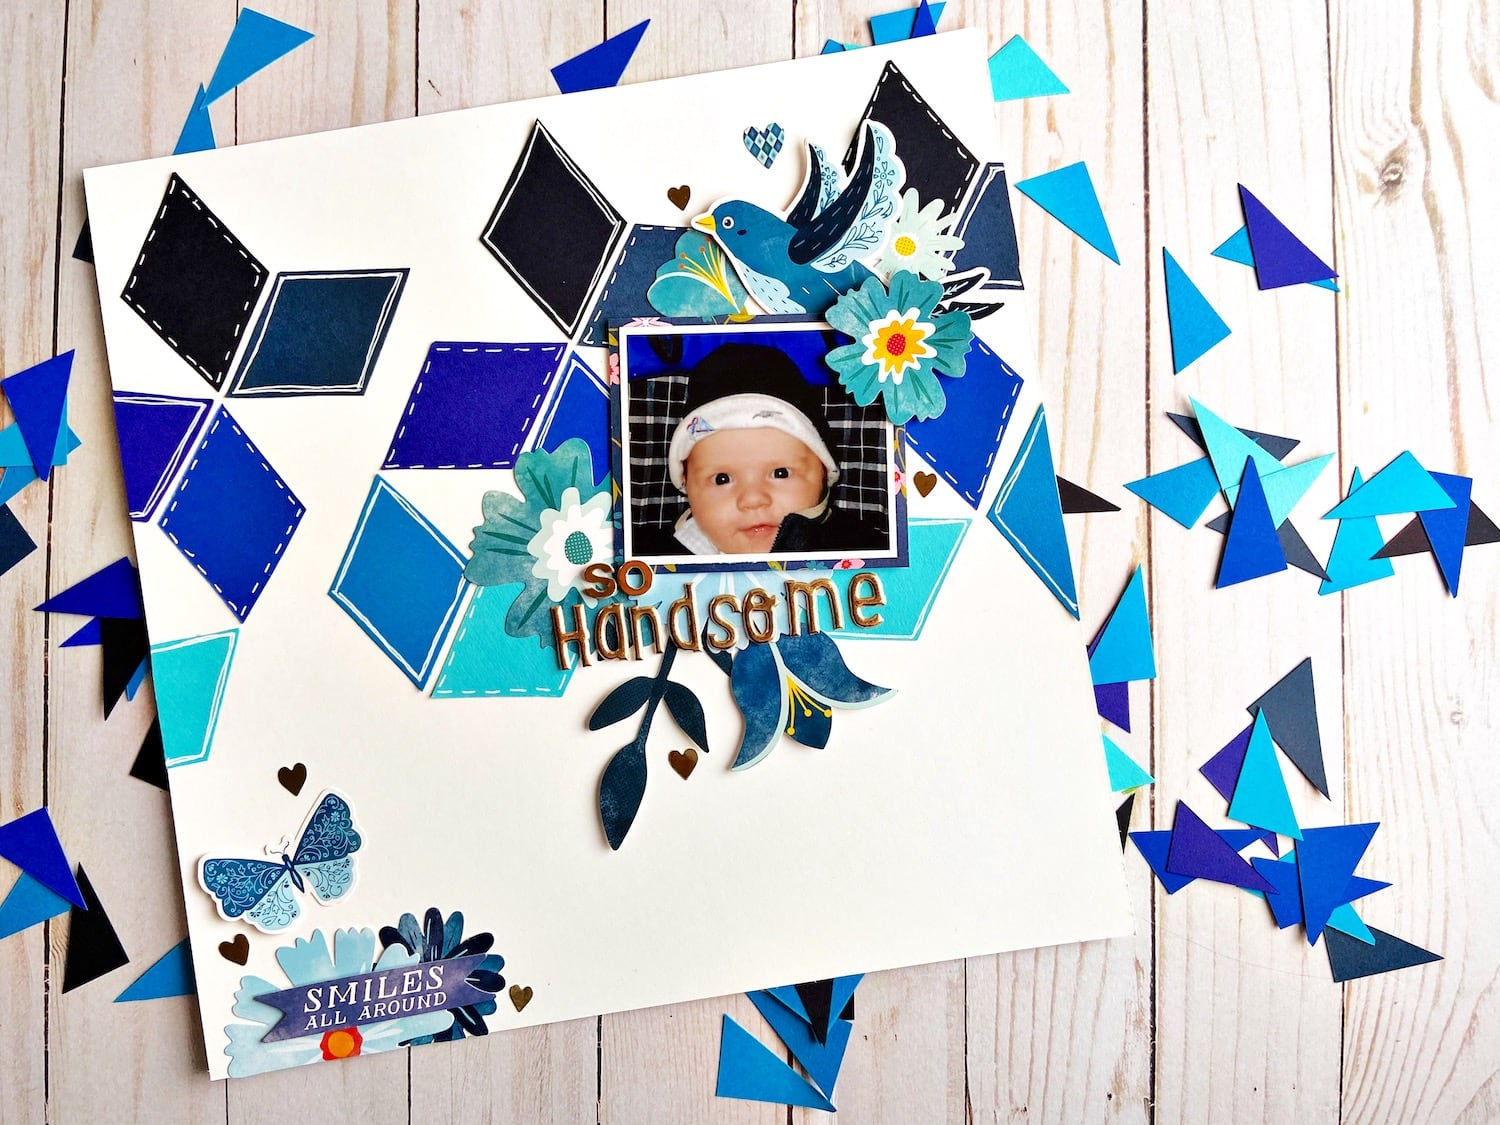 Beautiful Blues Diamond Scrapbook Layout